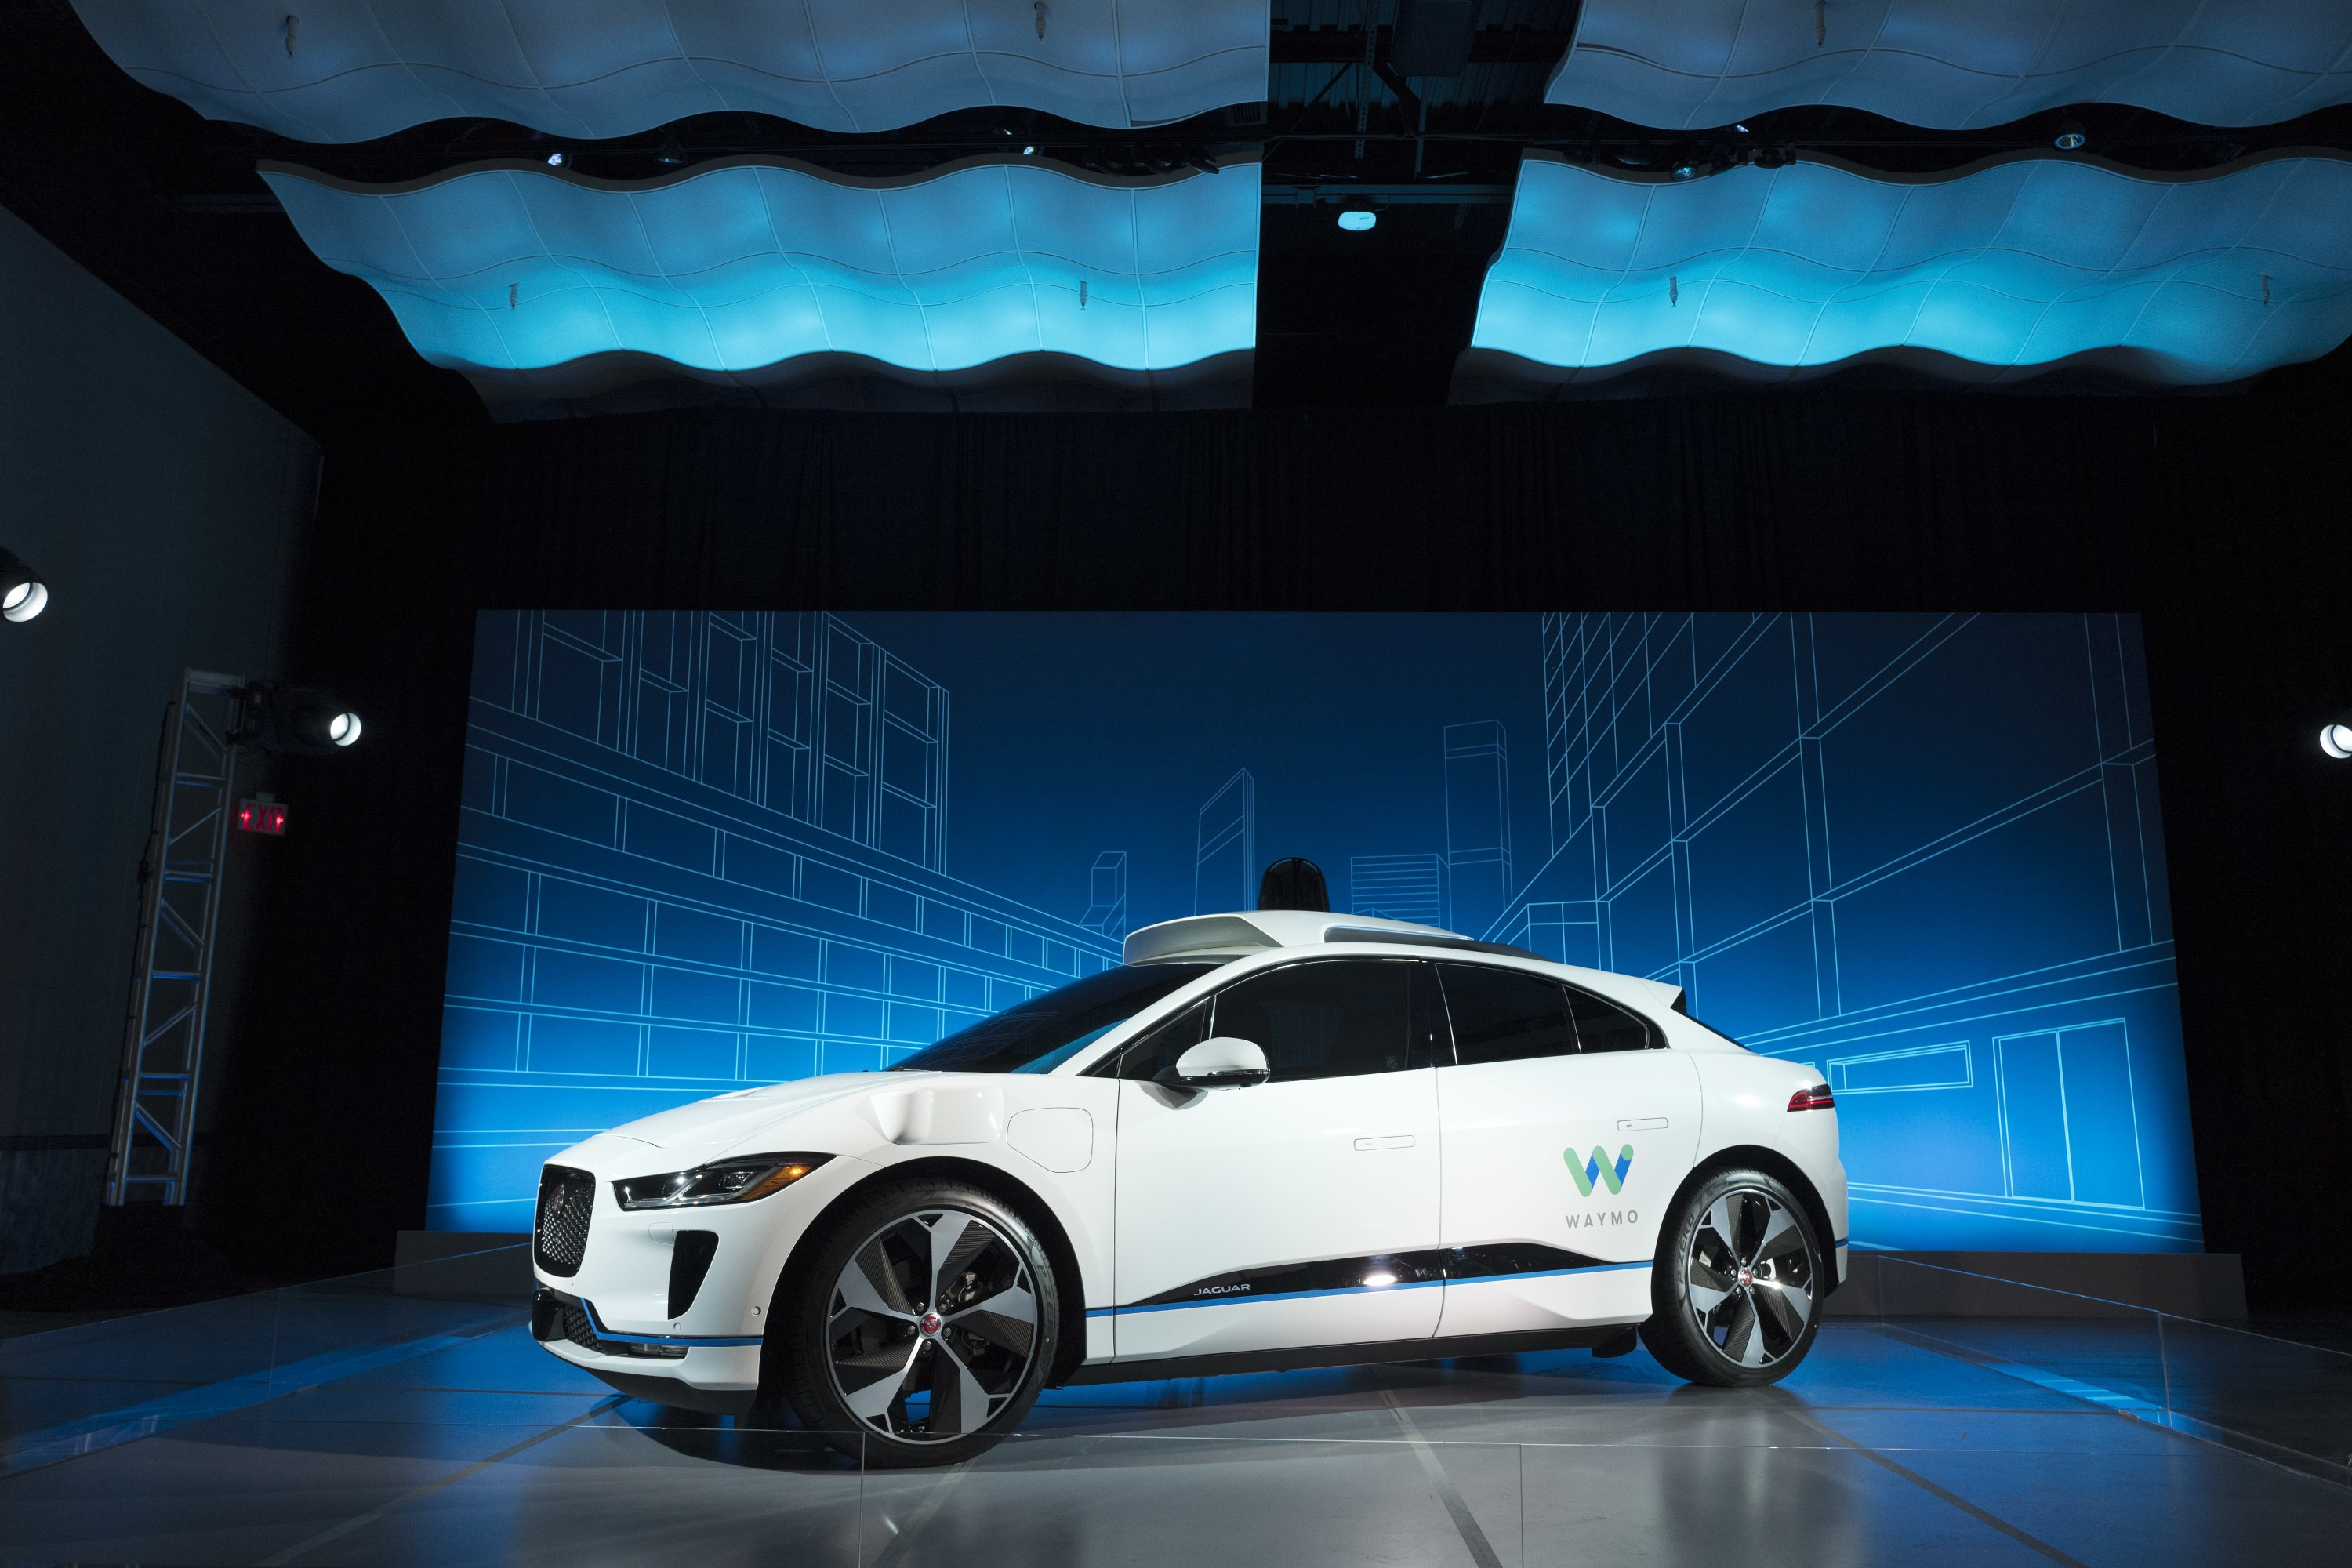 Waymo to buy 20,000 Jaguars for robotic ride-hailing service